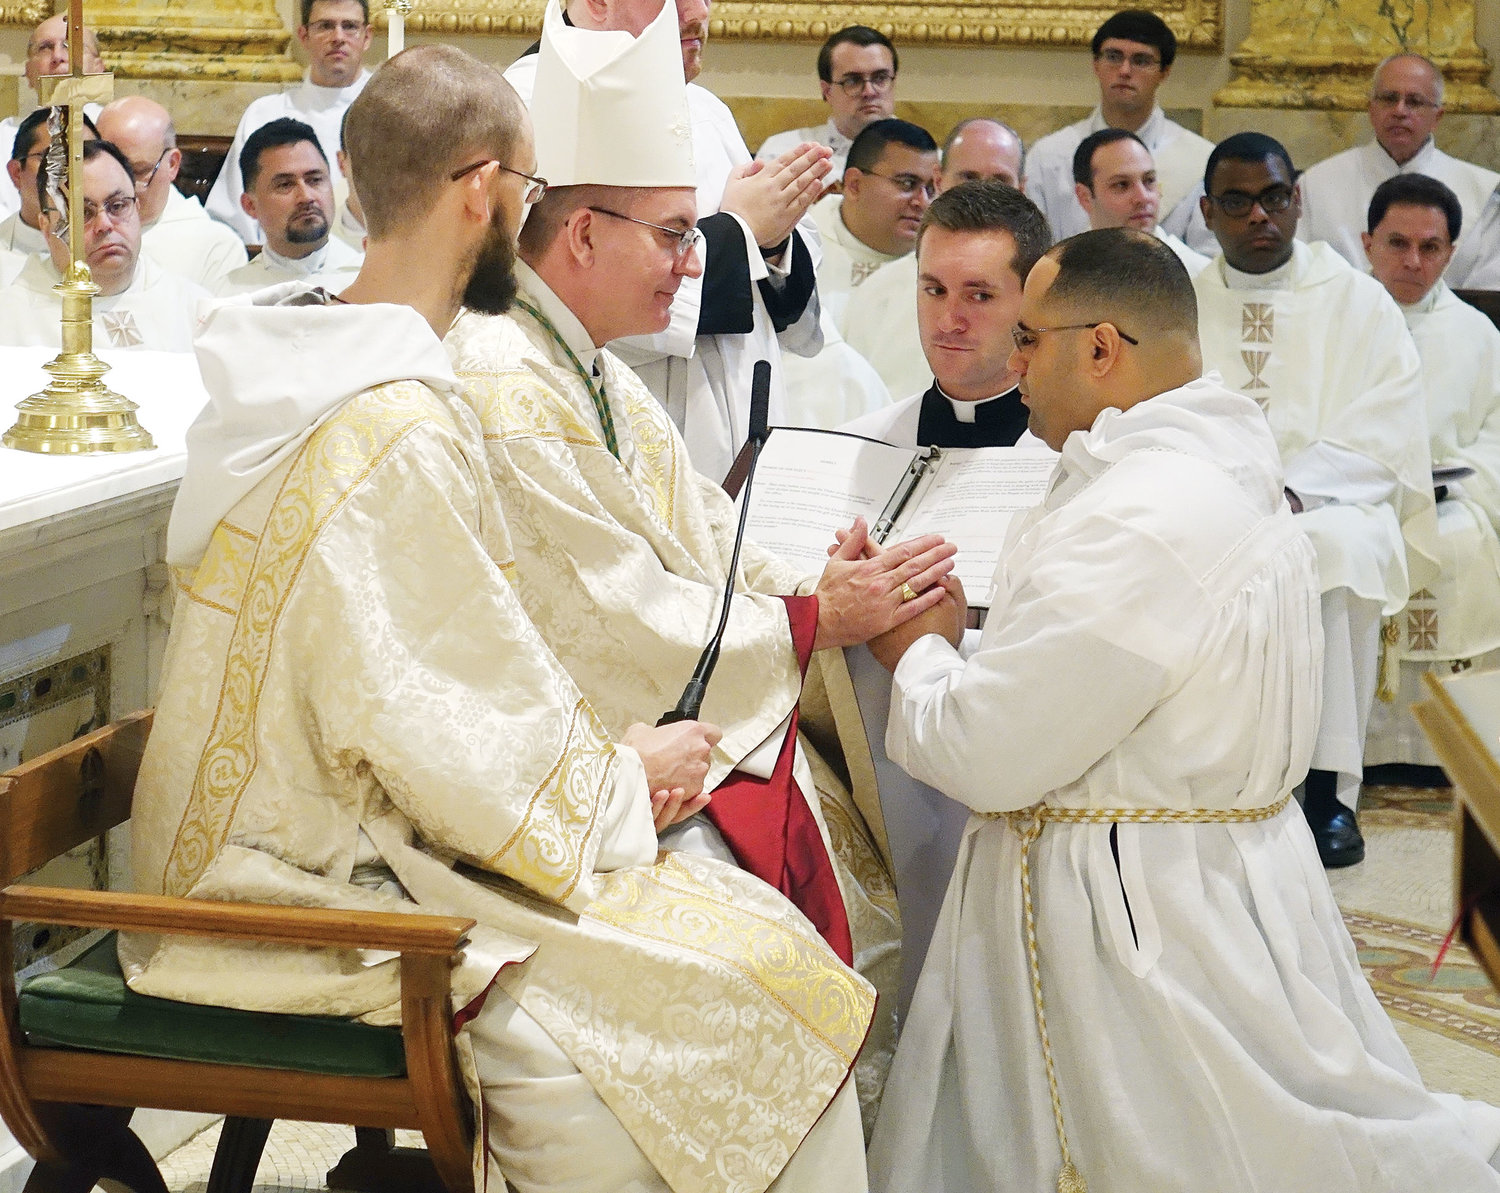 Bishop John O. Barres of Rockville Centre, the ordaining prelate, accepts a promise of obedience from Deacon John Figueroa during the Rite of Ordination.